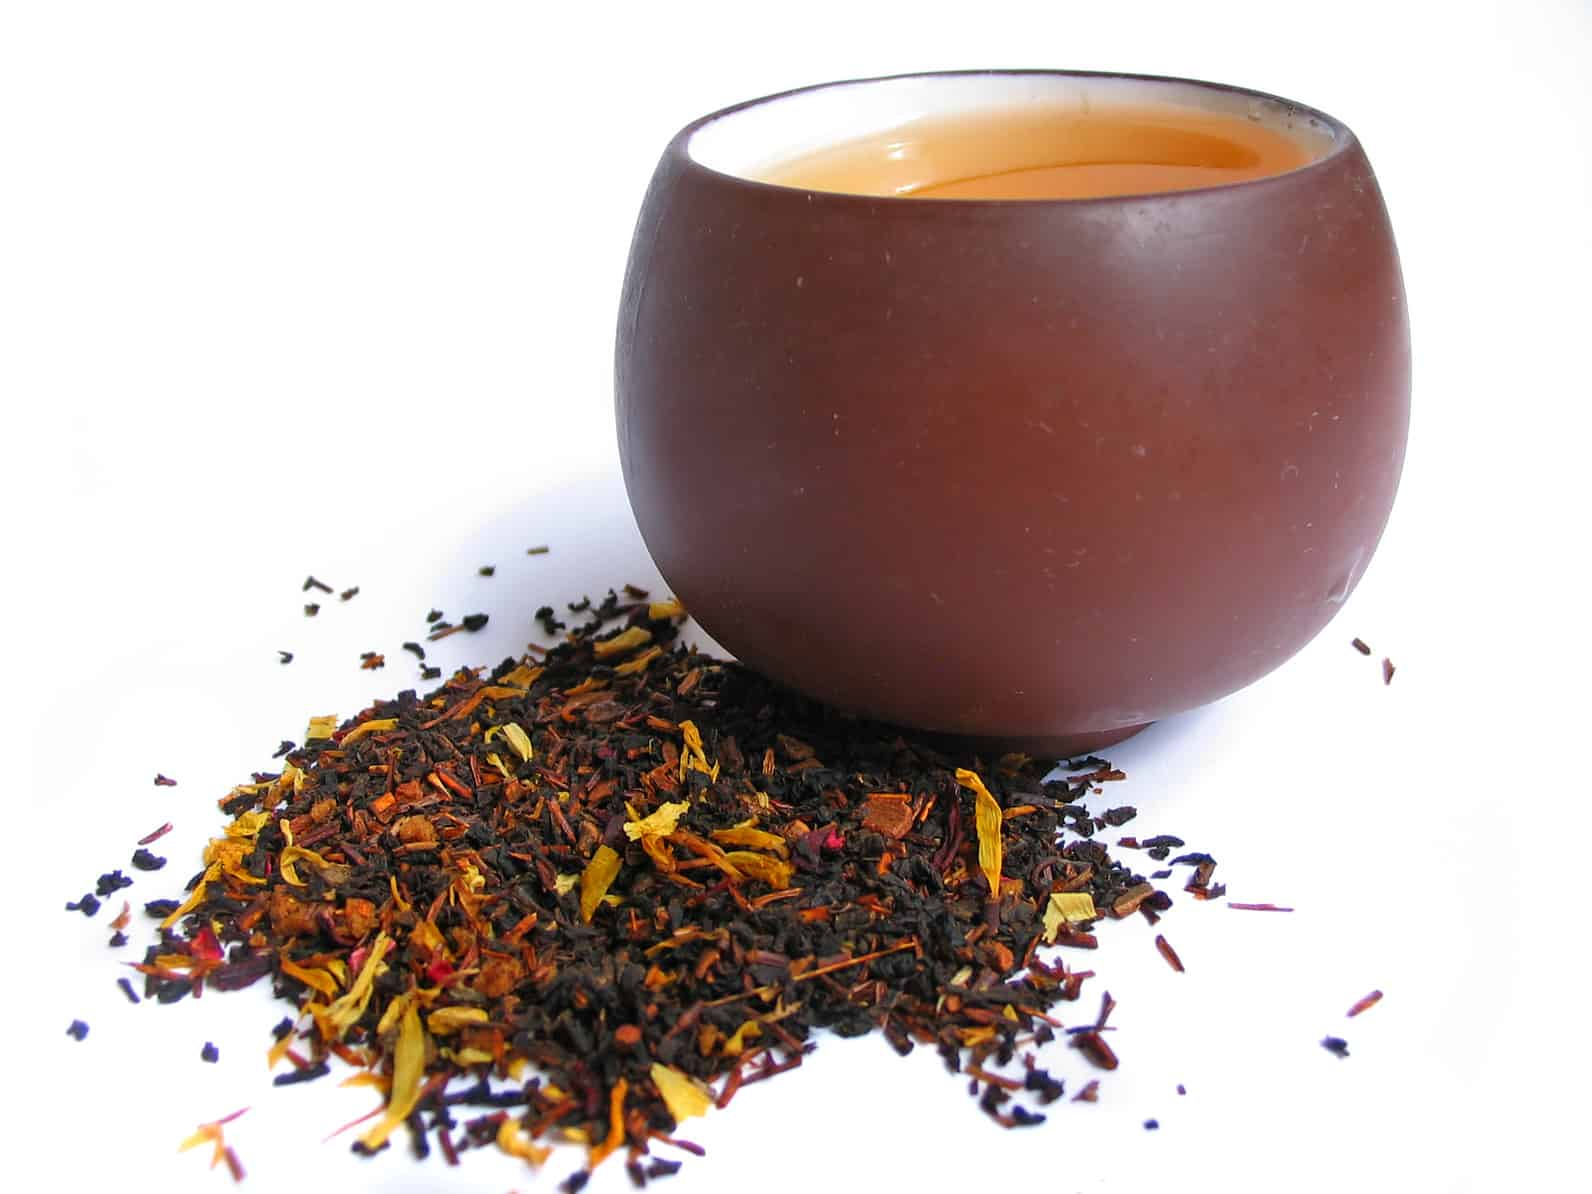 A mix black and flower tea leaves with cup of tea